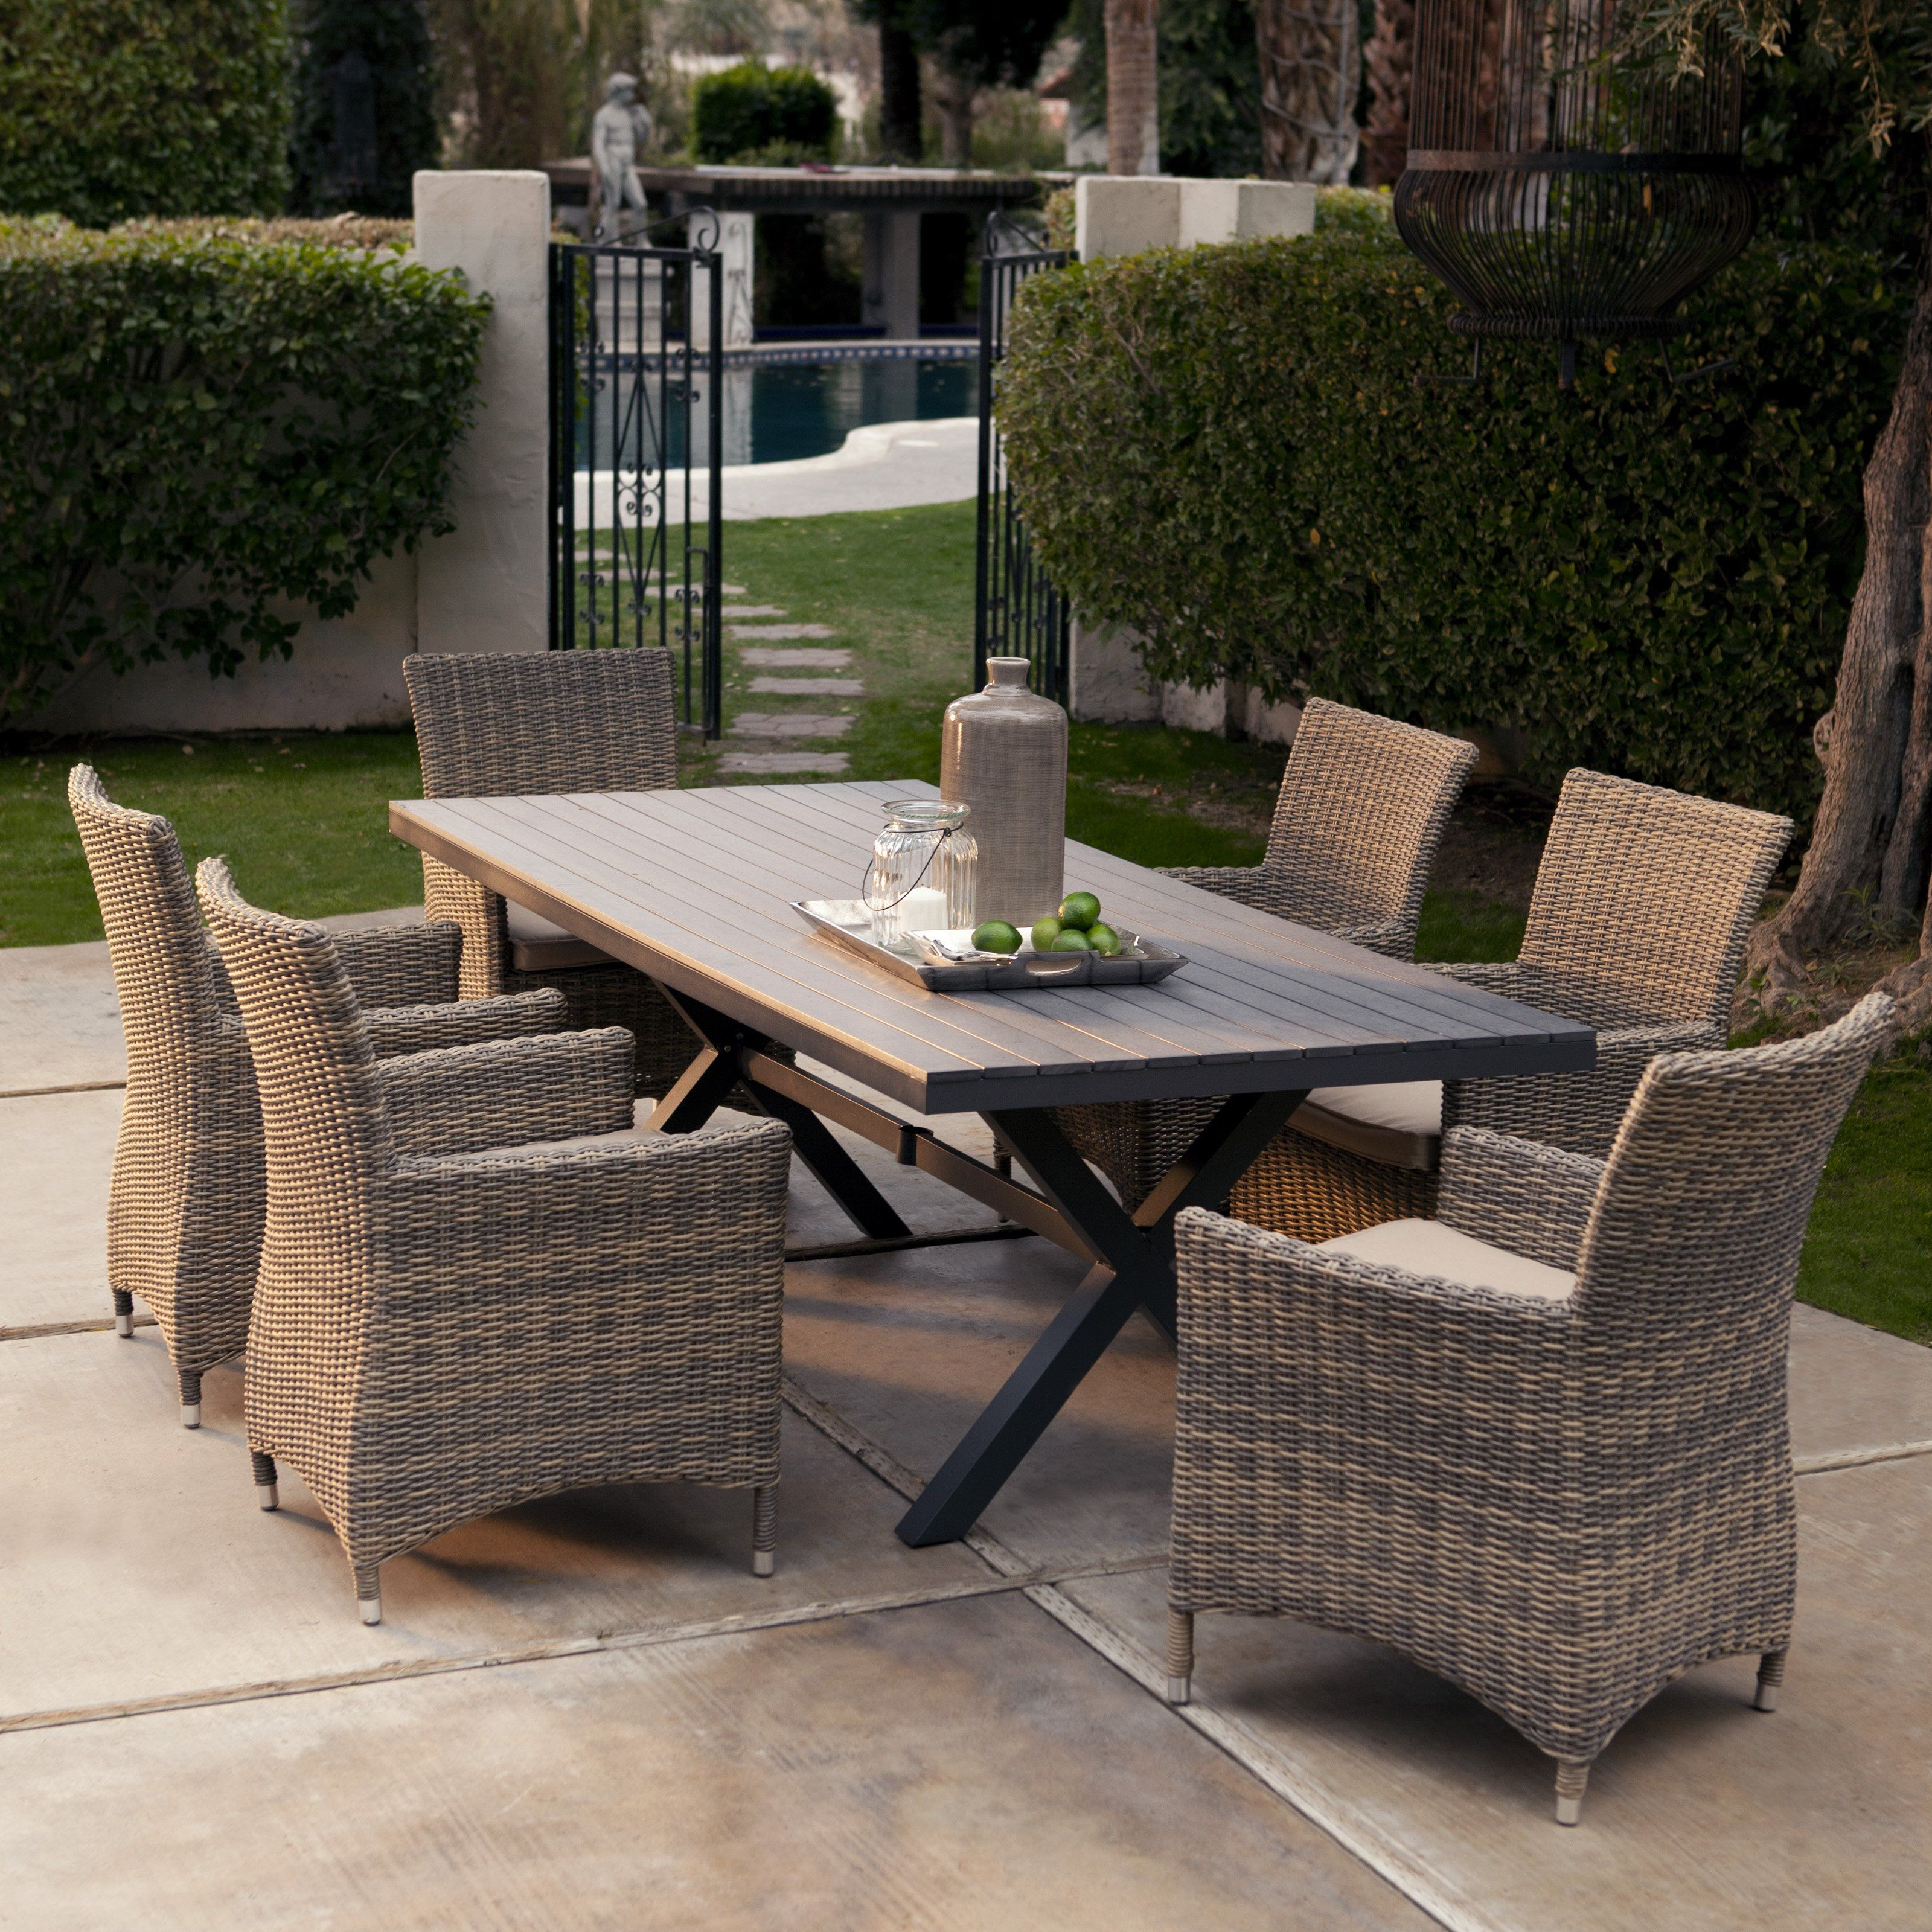 Outdoor Patio Furniture Dining Table Bella All Weather Wicker Patio Dining Set Seats 6 Patio Dining